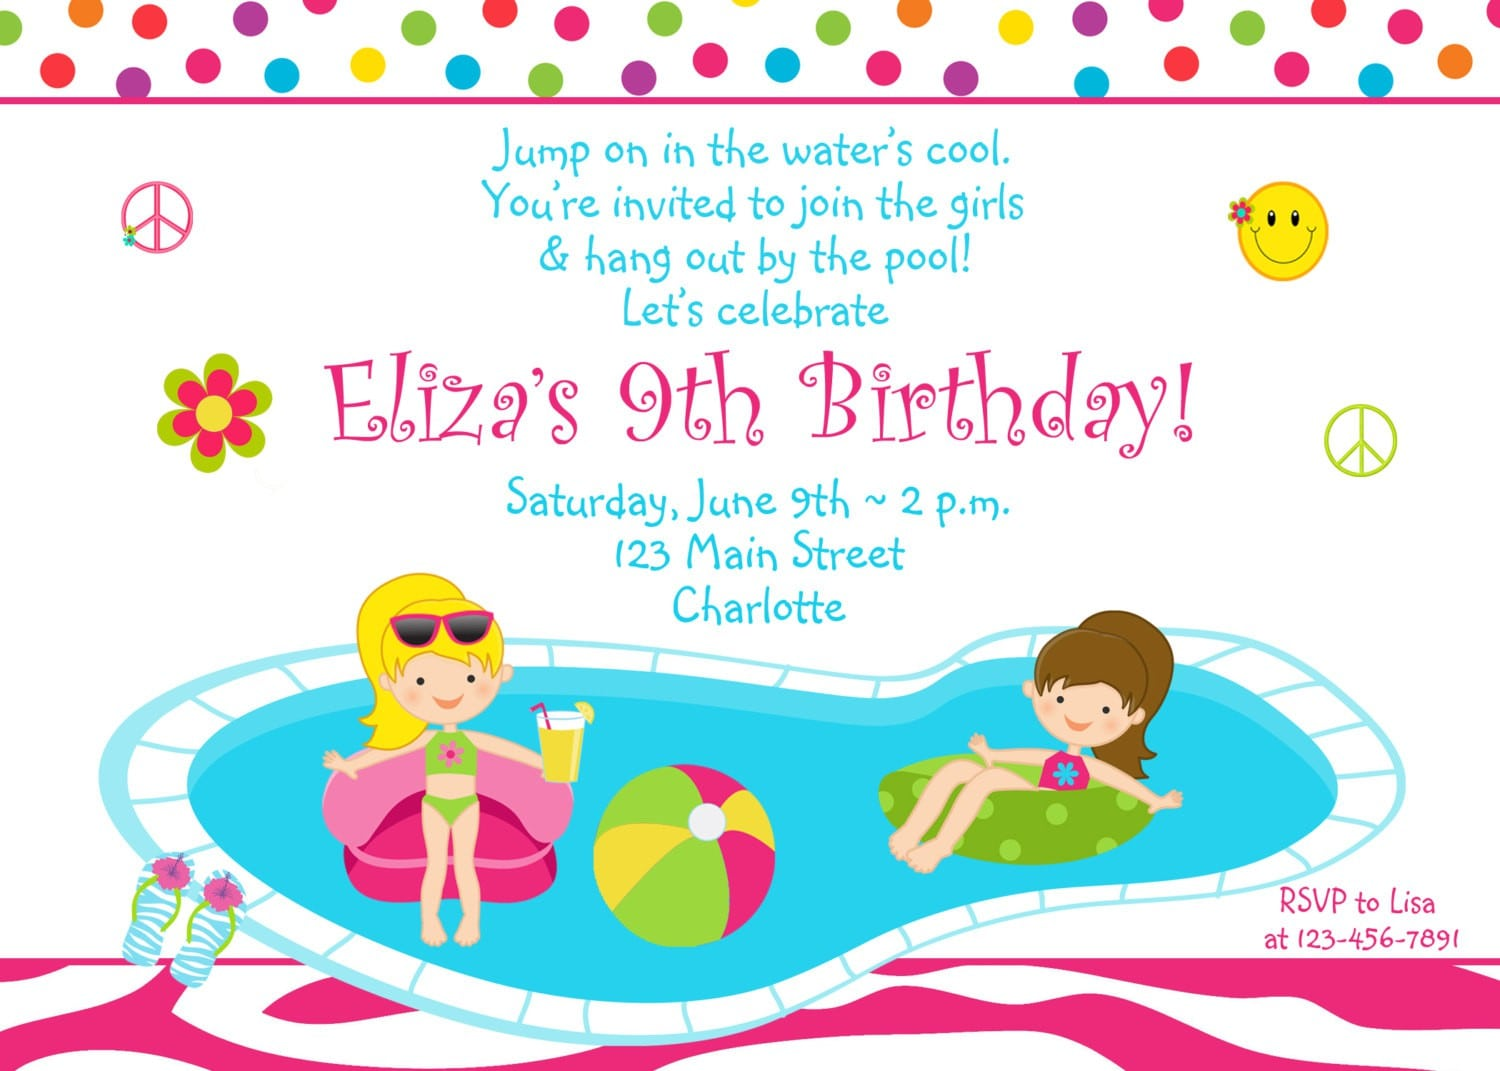 Kids Birthday Party Invitation Sample 4